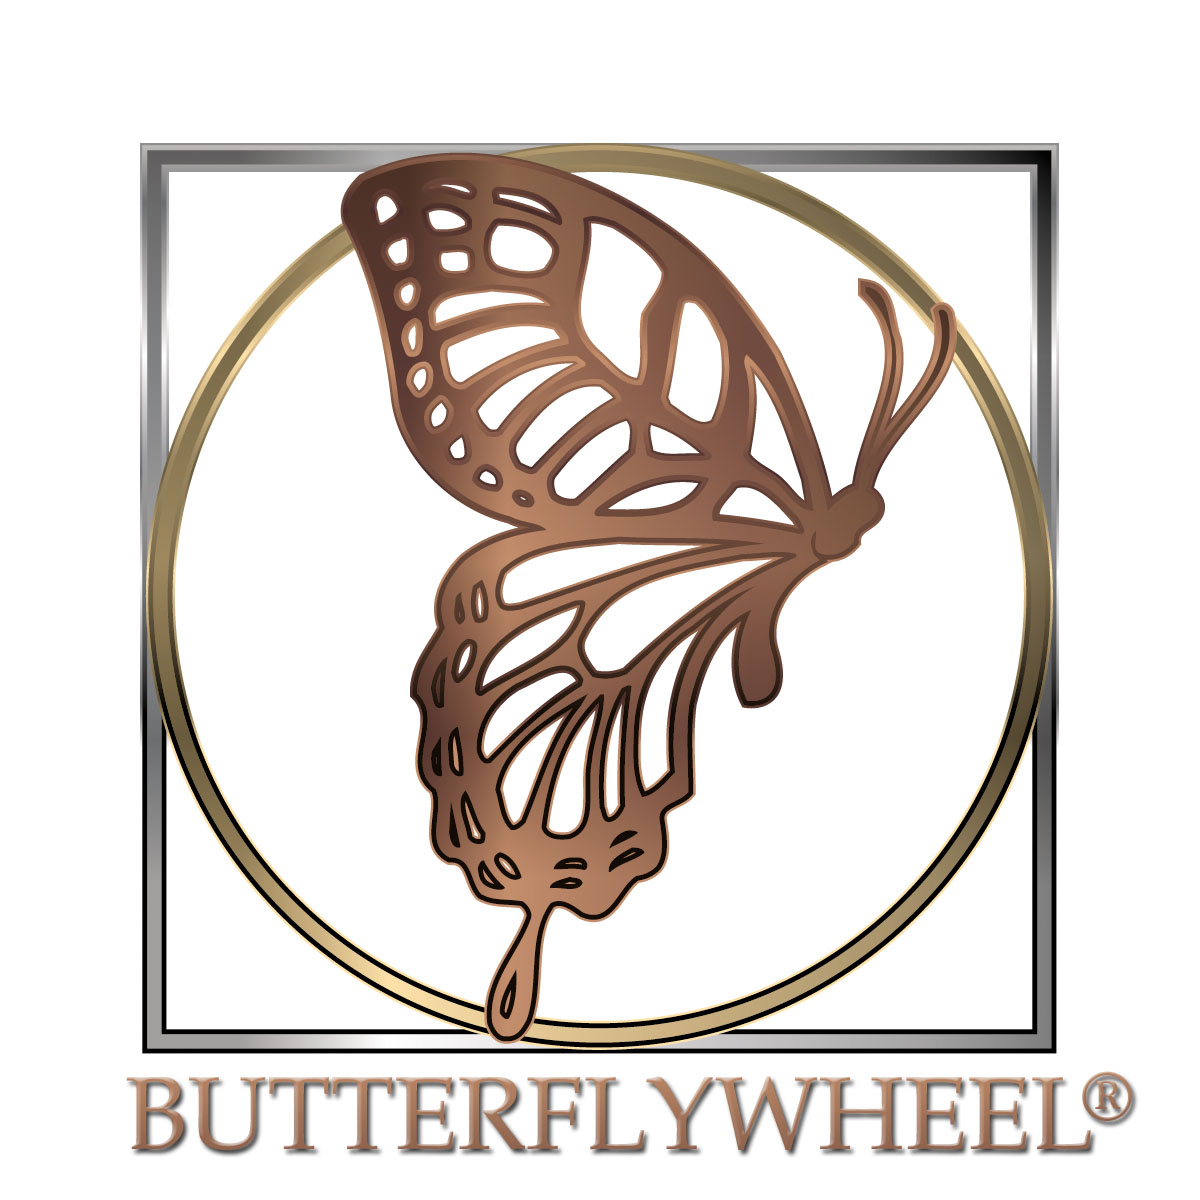 BUTTERFLYWHEEL® Logo - Side view of butterfly within a circle within a square